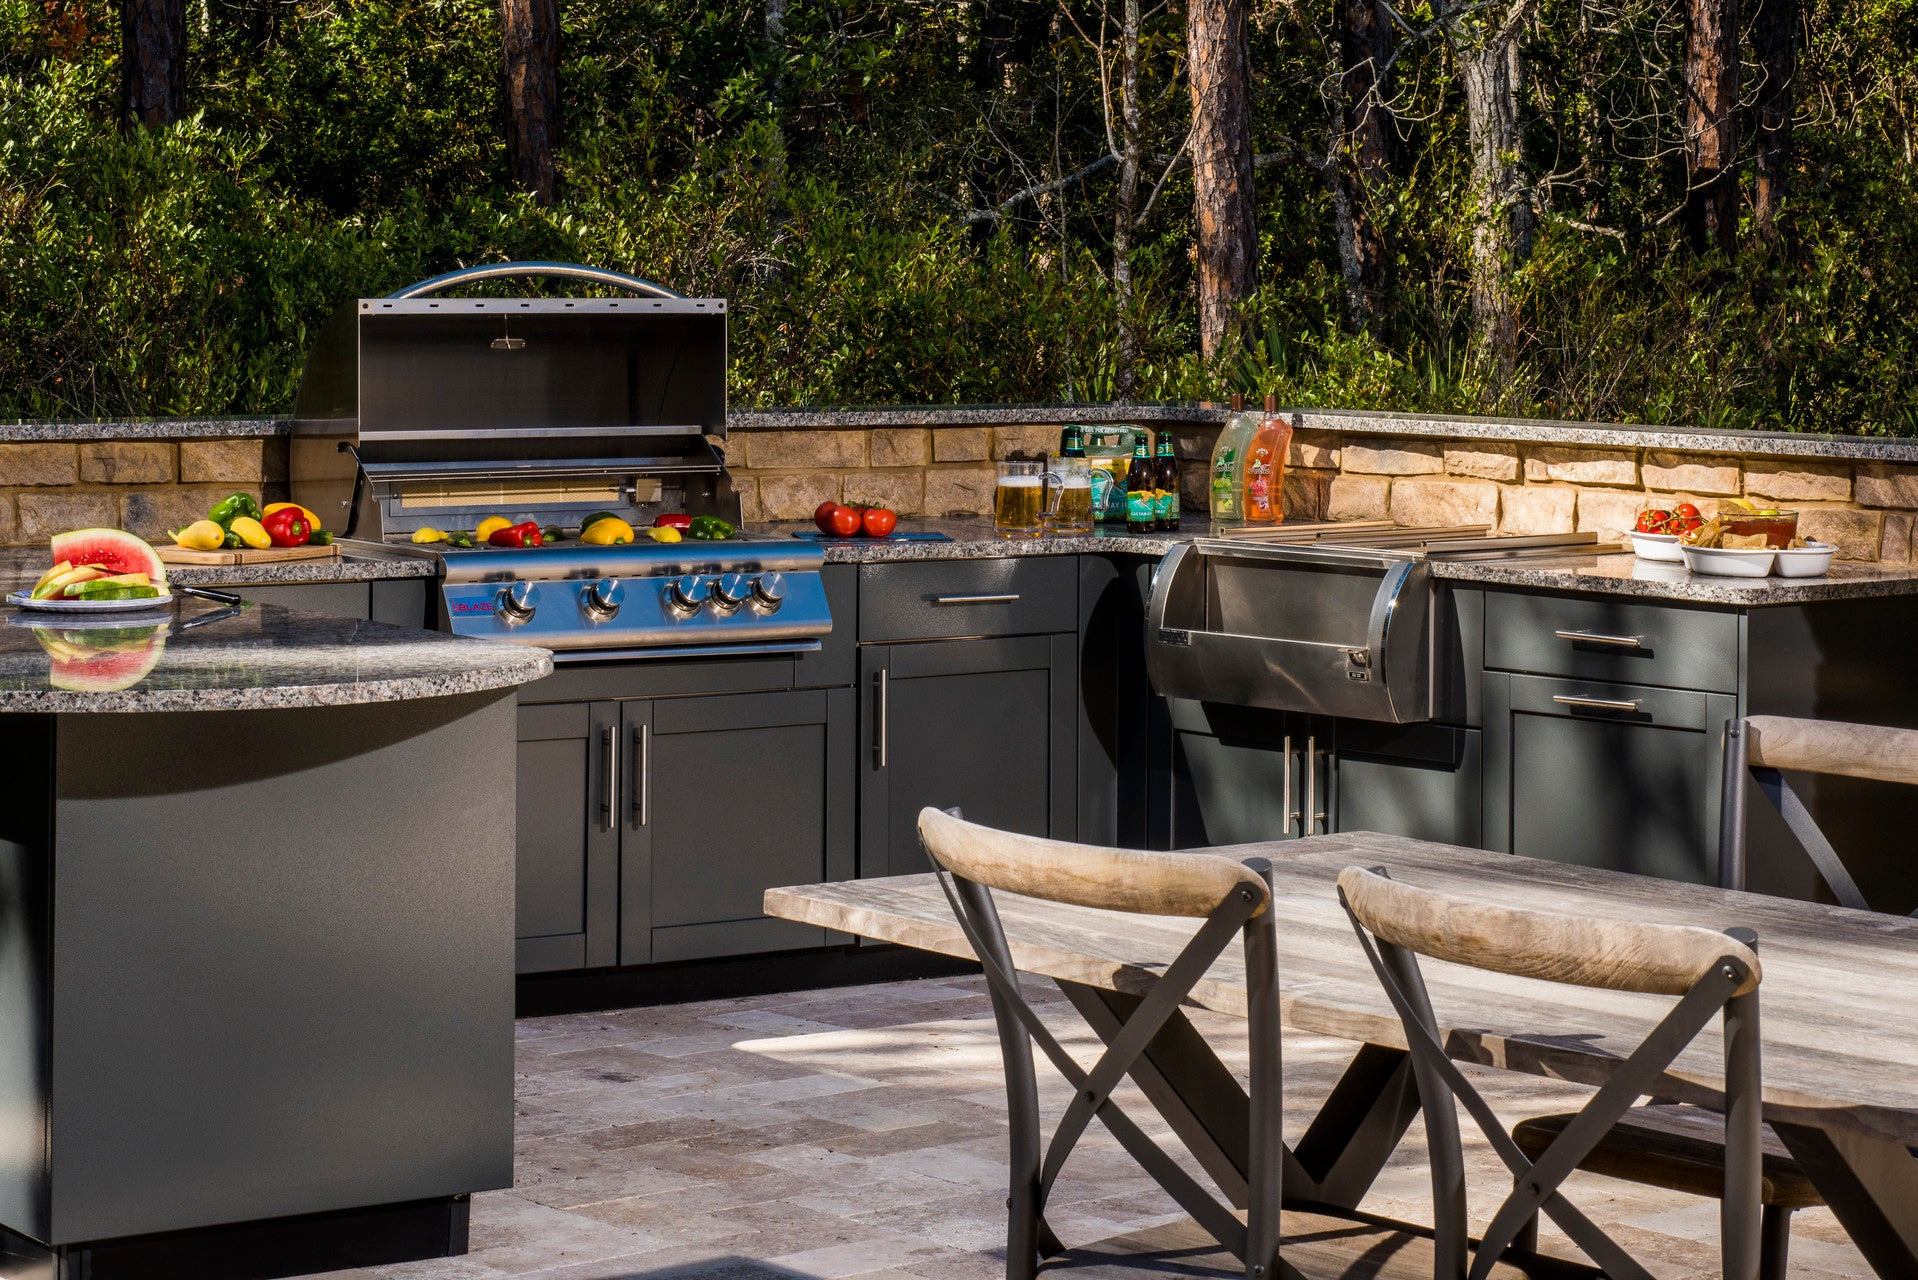 outdoor kitchen 1 with BBQ and beverage center